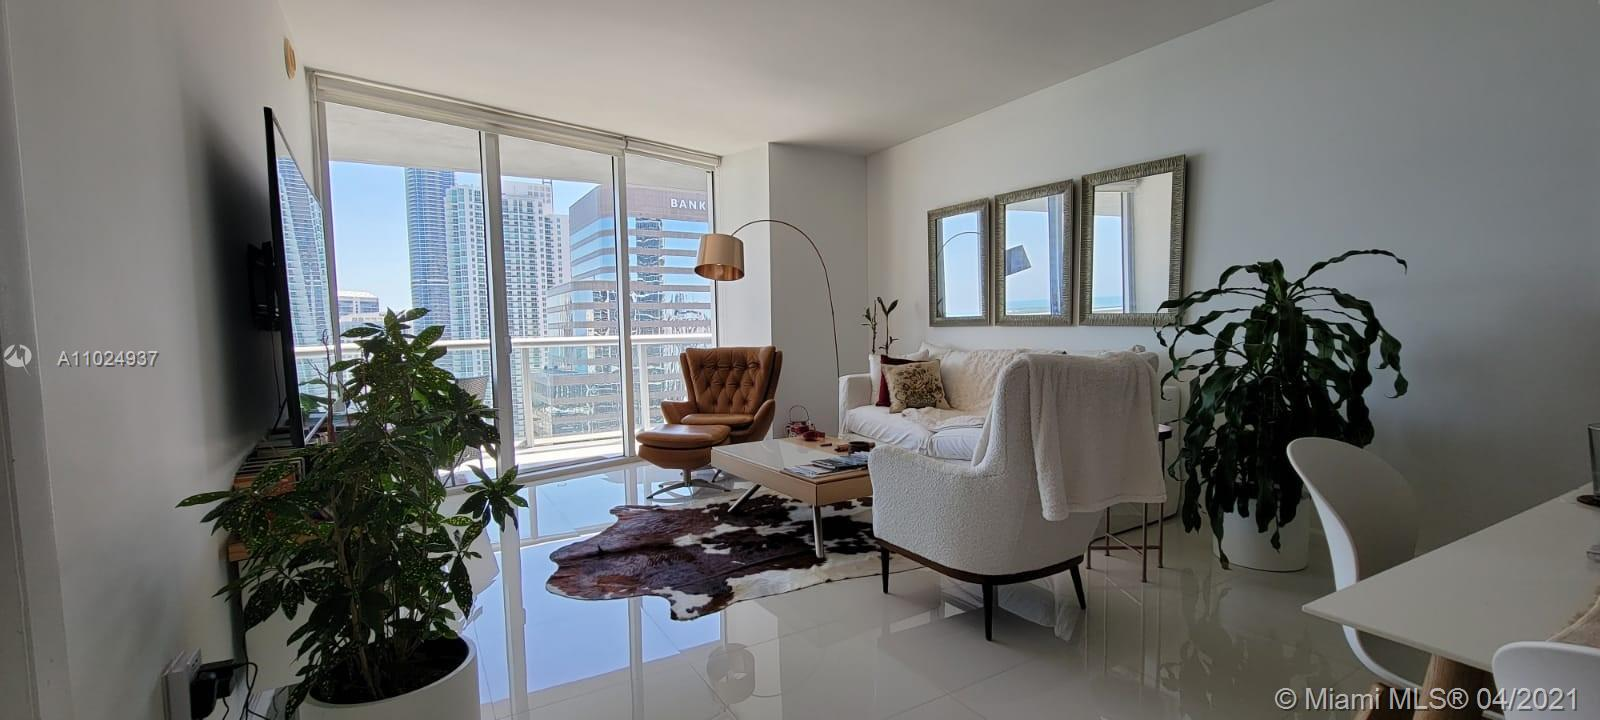 Icon Brickell 2 #3409 - 495 Brickell Ave #3409, Miami, FL 33131